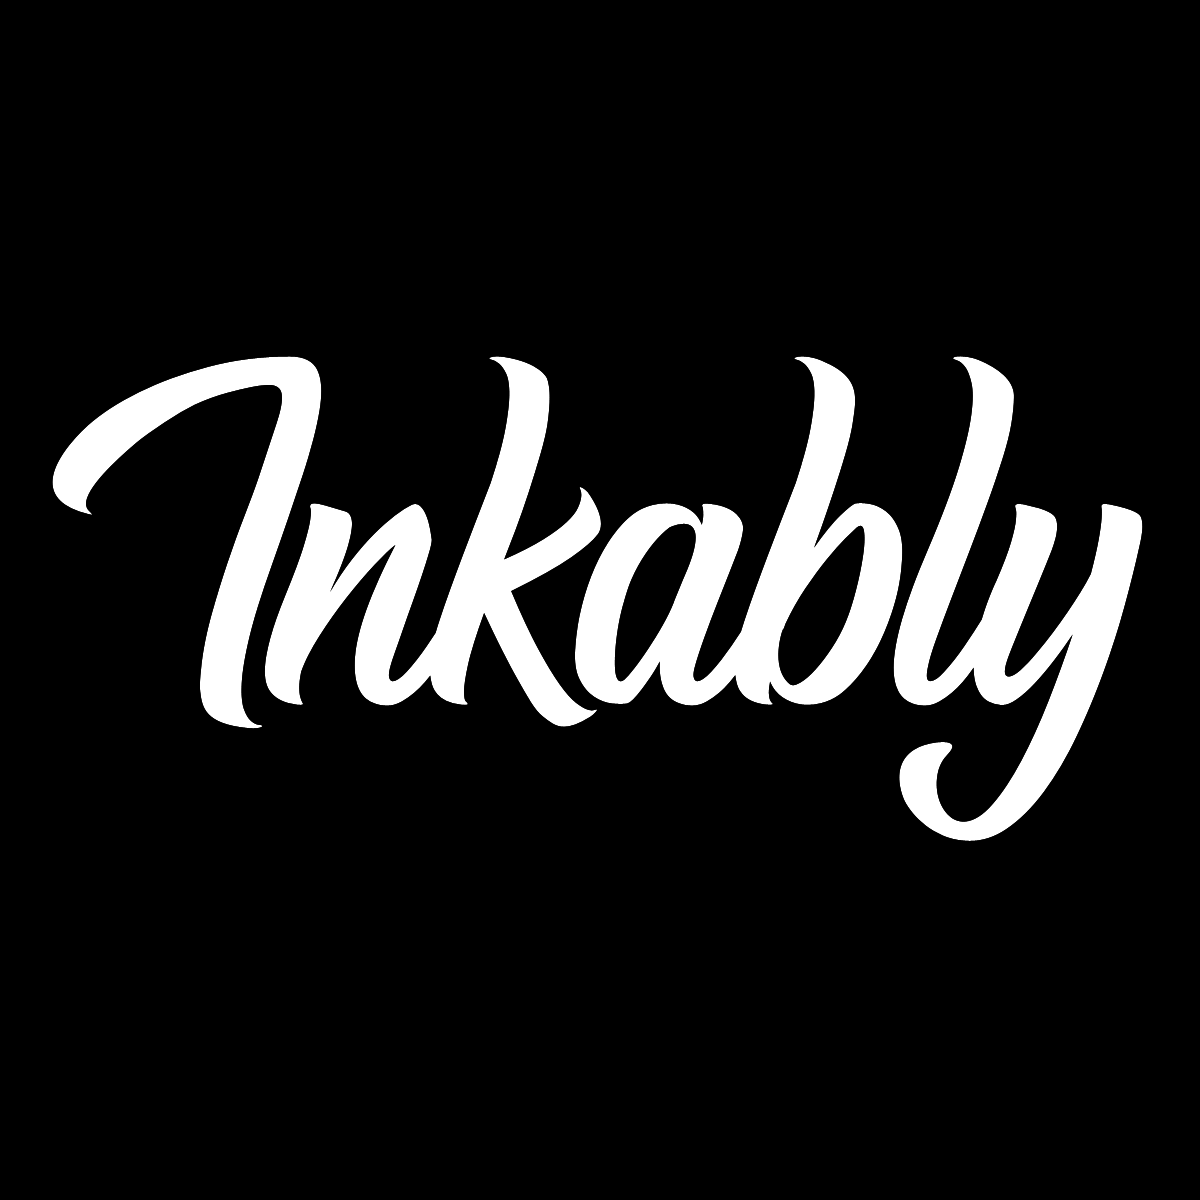 Inkably Inc. BV